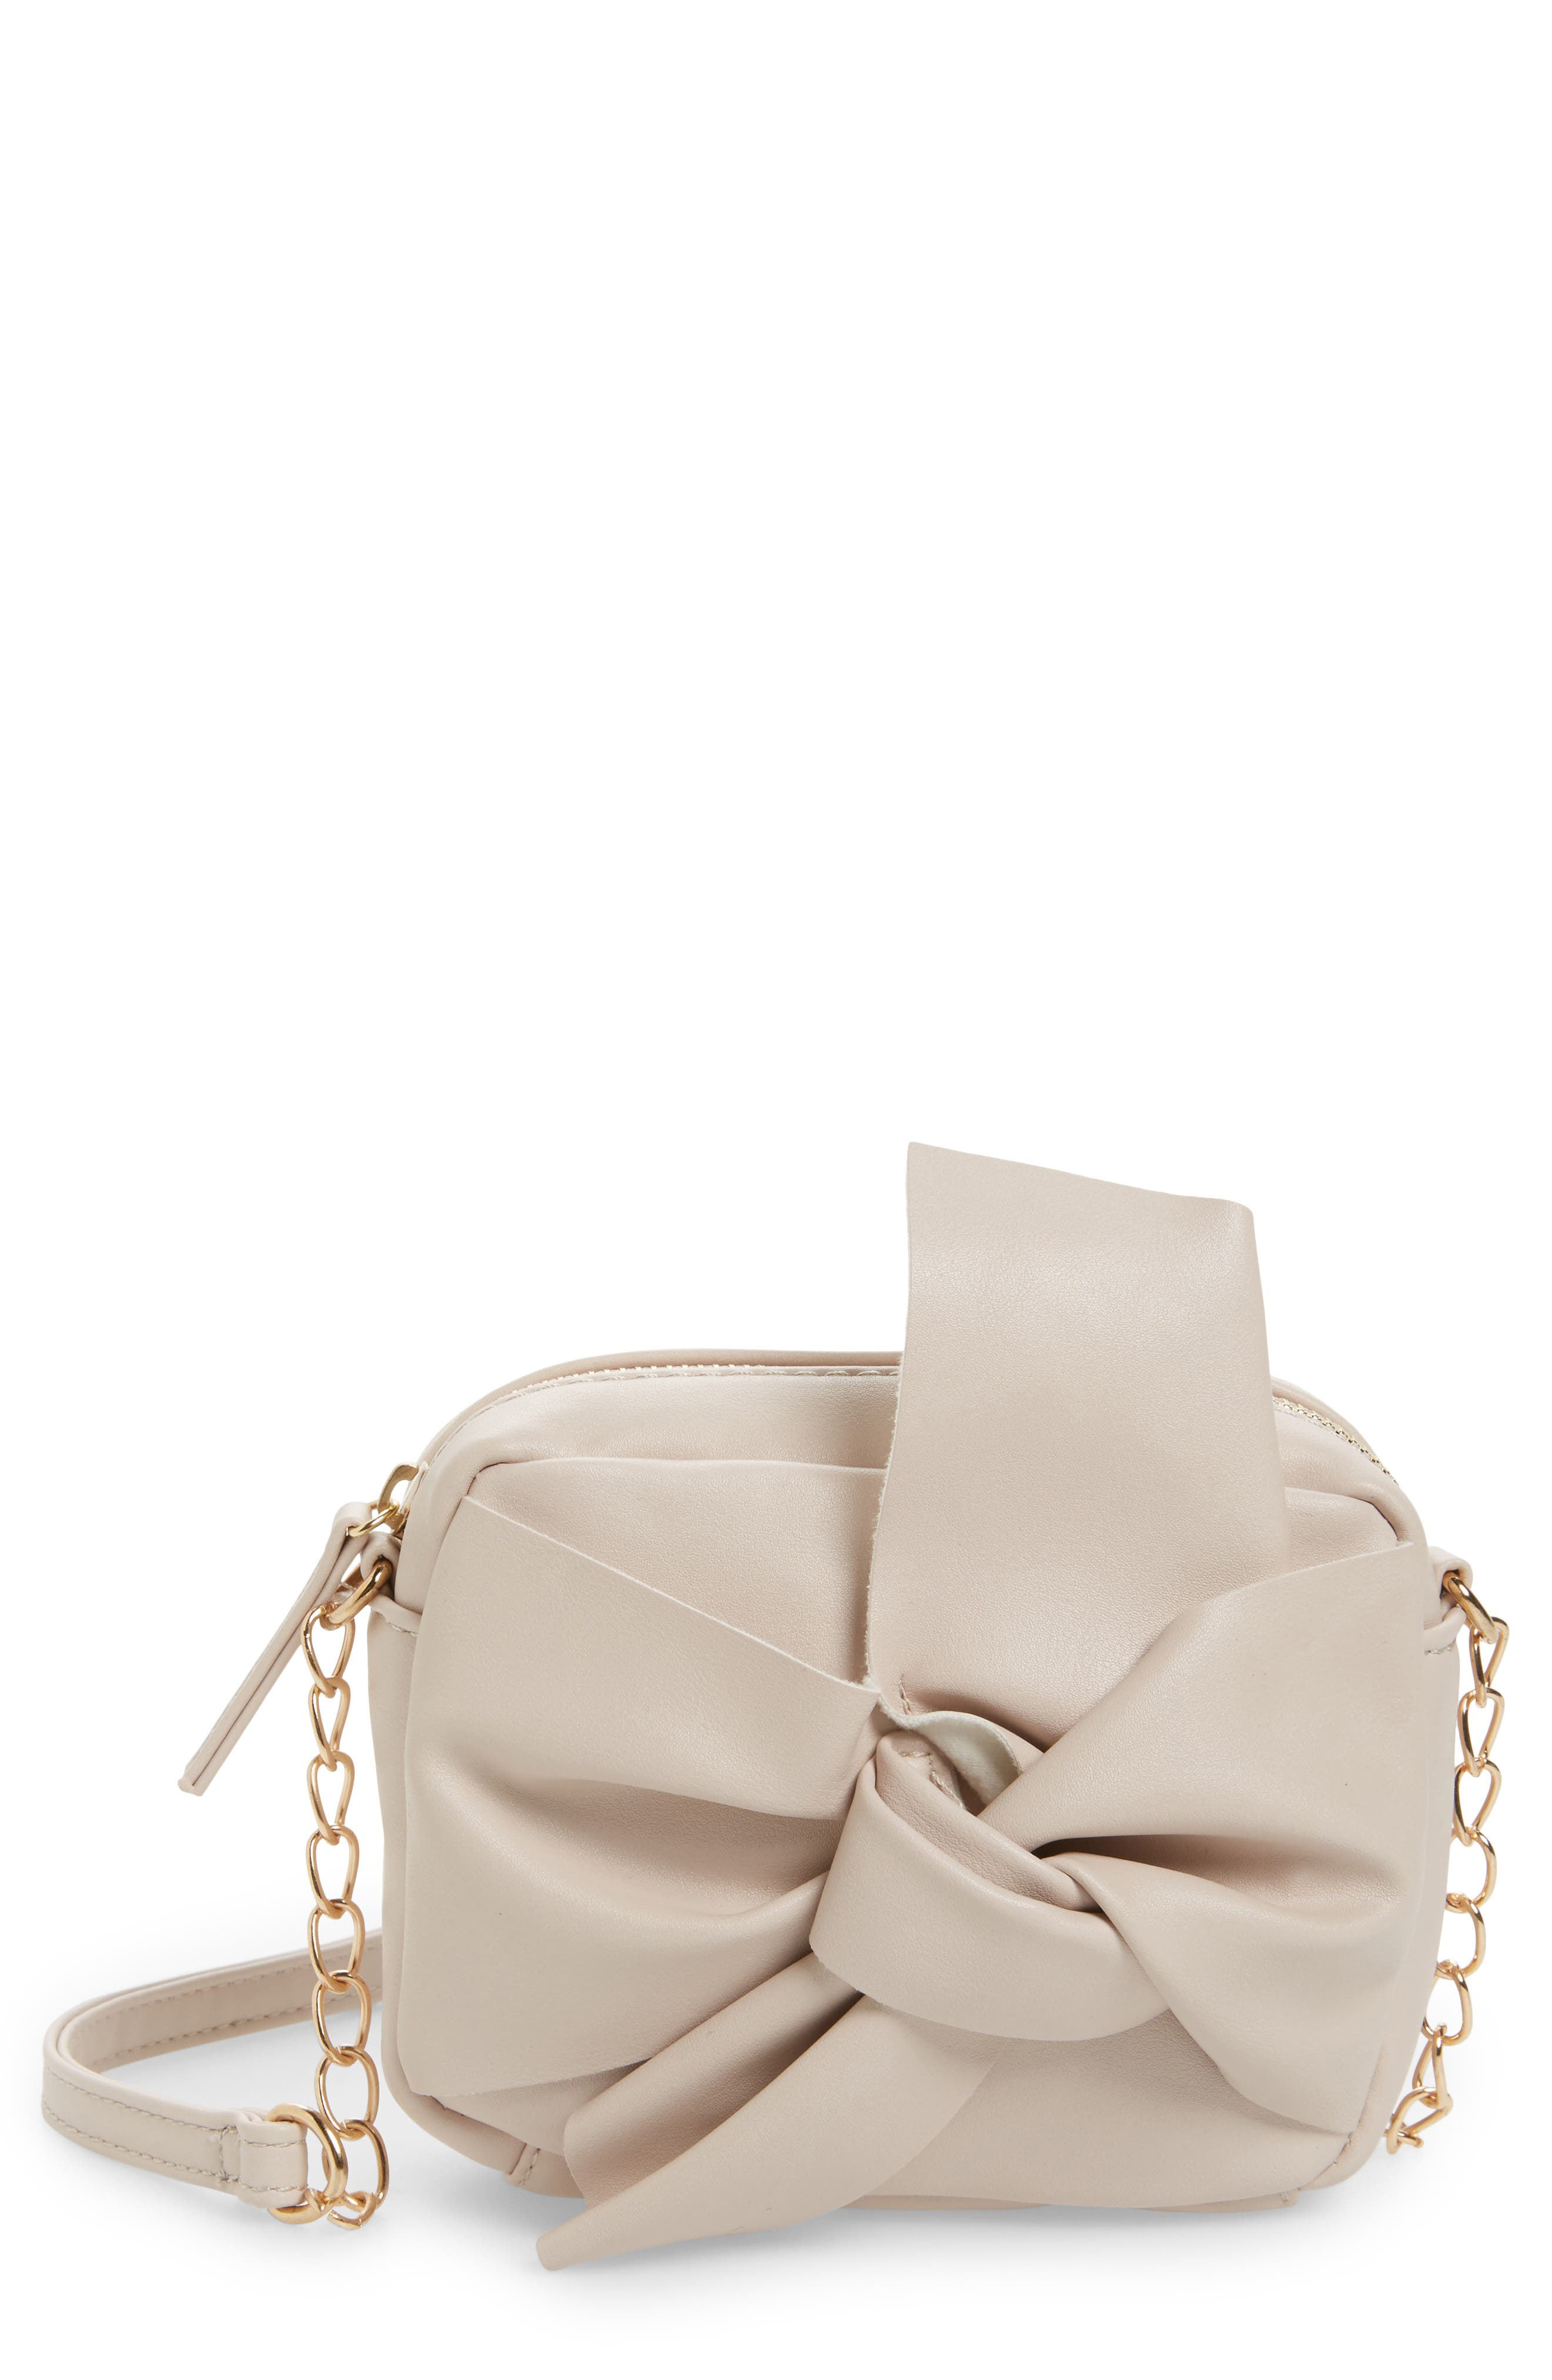 Knotted Bow Faux Leather Crossbody Bag,                             Main thumbnail 1, color,                             650